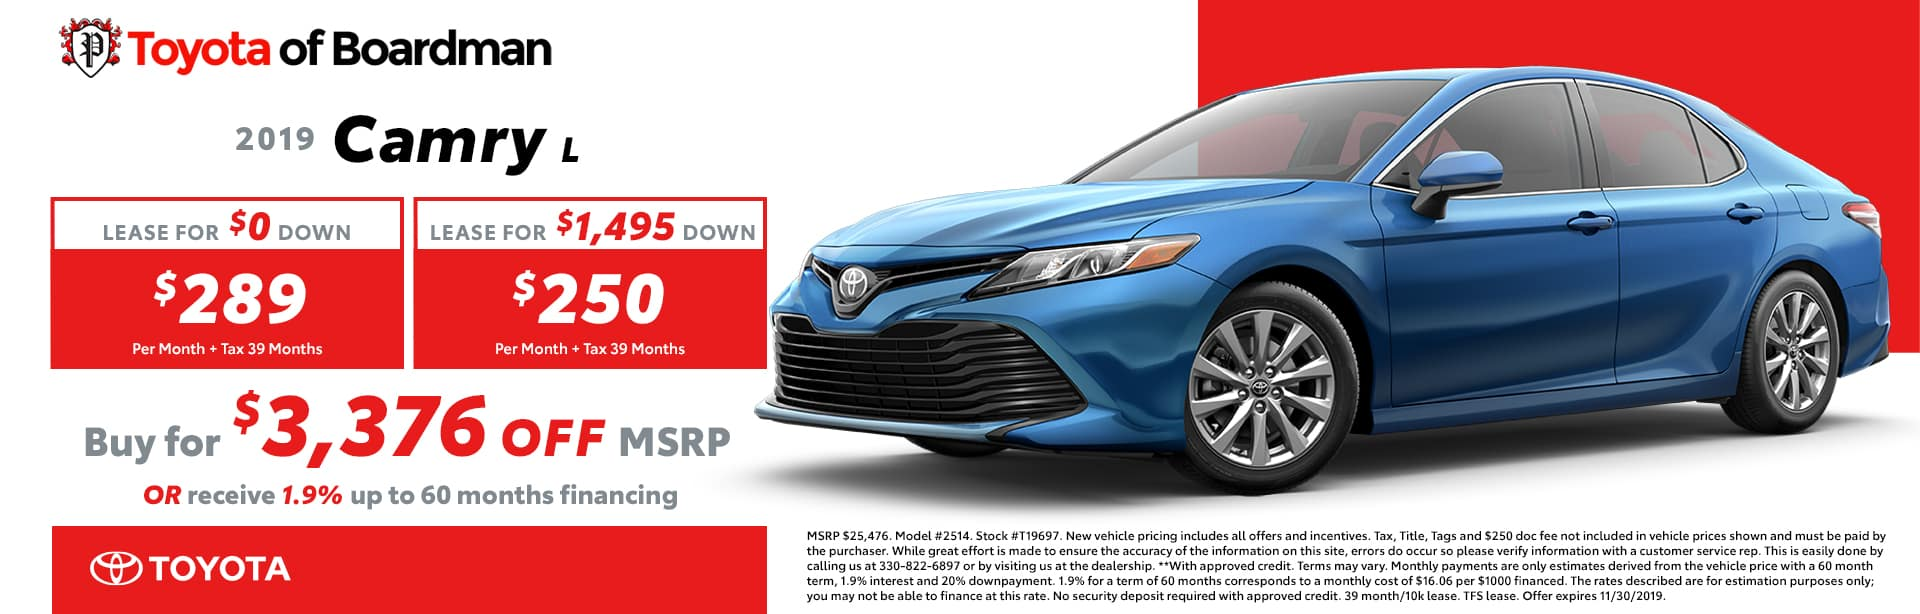 November special on the Toyota Camry